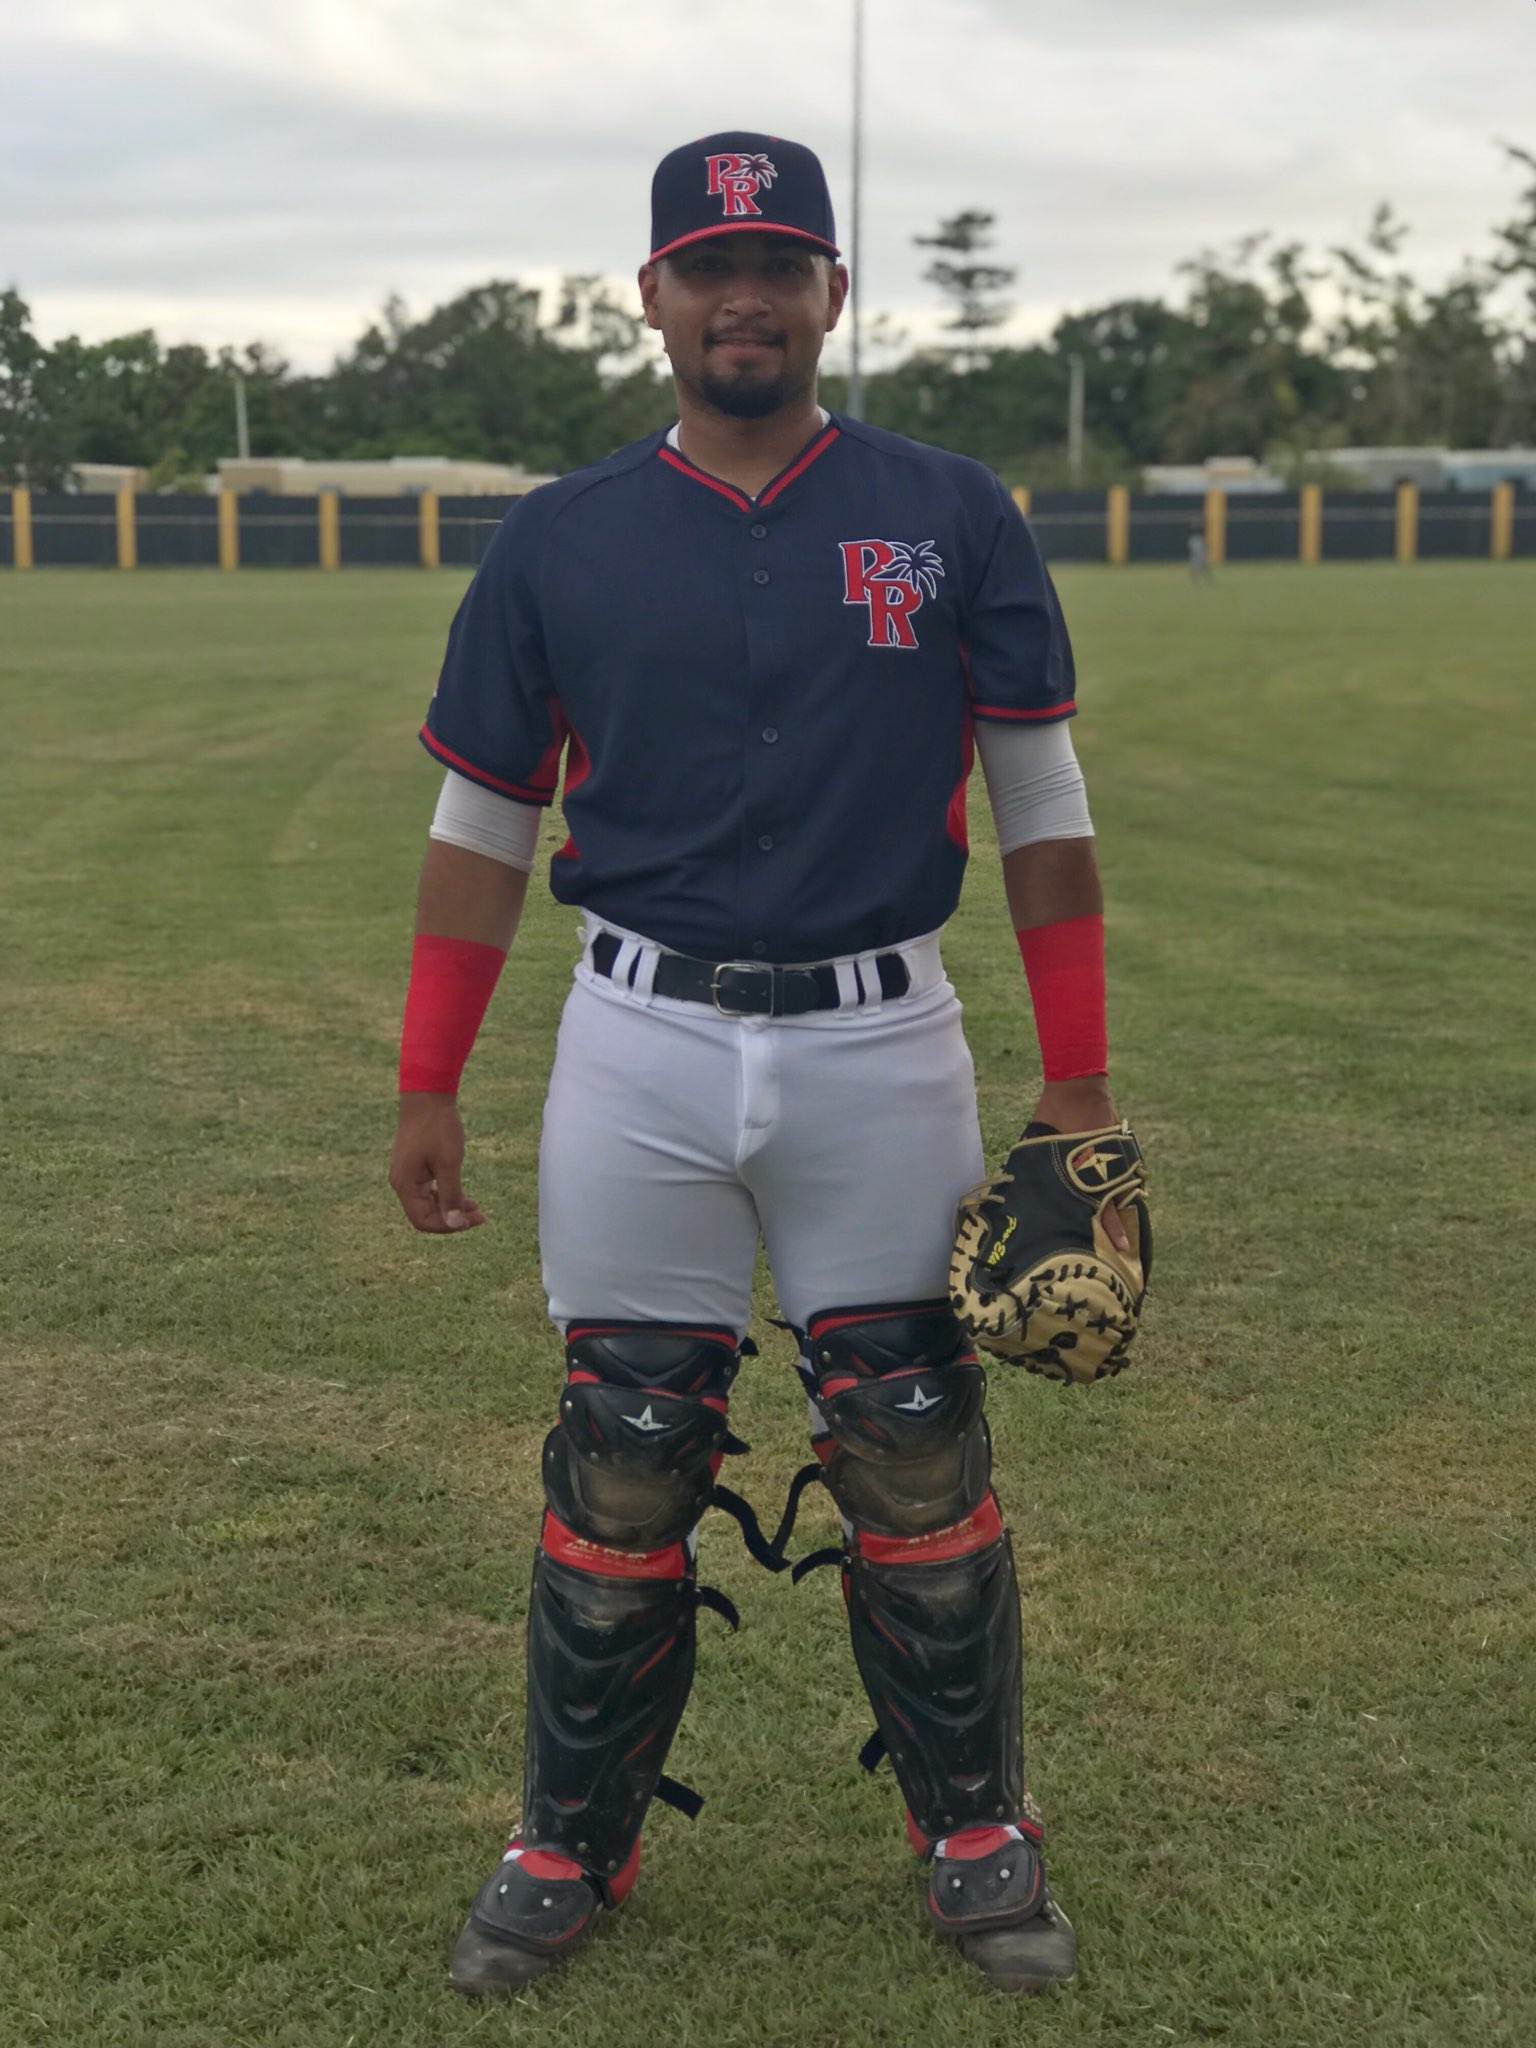 Willie Concepcion - Social Media Director/Recruiting SpecialistCurrent Professional Baseball Player Willie has had the opportunity to experience baseball at the D1, D2 and D3 level. Following a CUNY Championship in 2018, he signed to play for the Puerto Rican Islanders of the Empire Professional Baseball League. Willie has overcome a lot throughout his college career after being hospitalized twice for kidney failure and ulcers. After winning the battle with his health and overcoming adversity he has been able compete at the professional level. Due to this setback, Willie is currently in the process of receiving his Bachelors degree in Psychology and is looking to further his education and get his Master's degree in Sports Psychology and Sports Management and Finance. In addition to playing, Willie is a Brooklyn Cadets Baseball Club representative, baseball instructor at Dolphin Sports Academy and a Puerto Rican Instructional Baseball League scout.